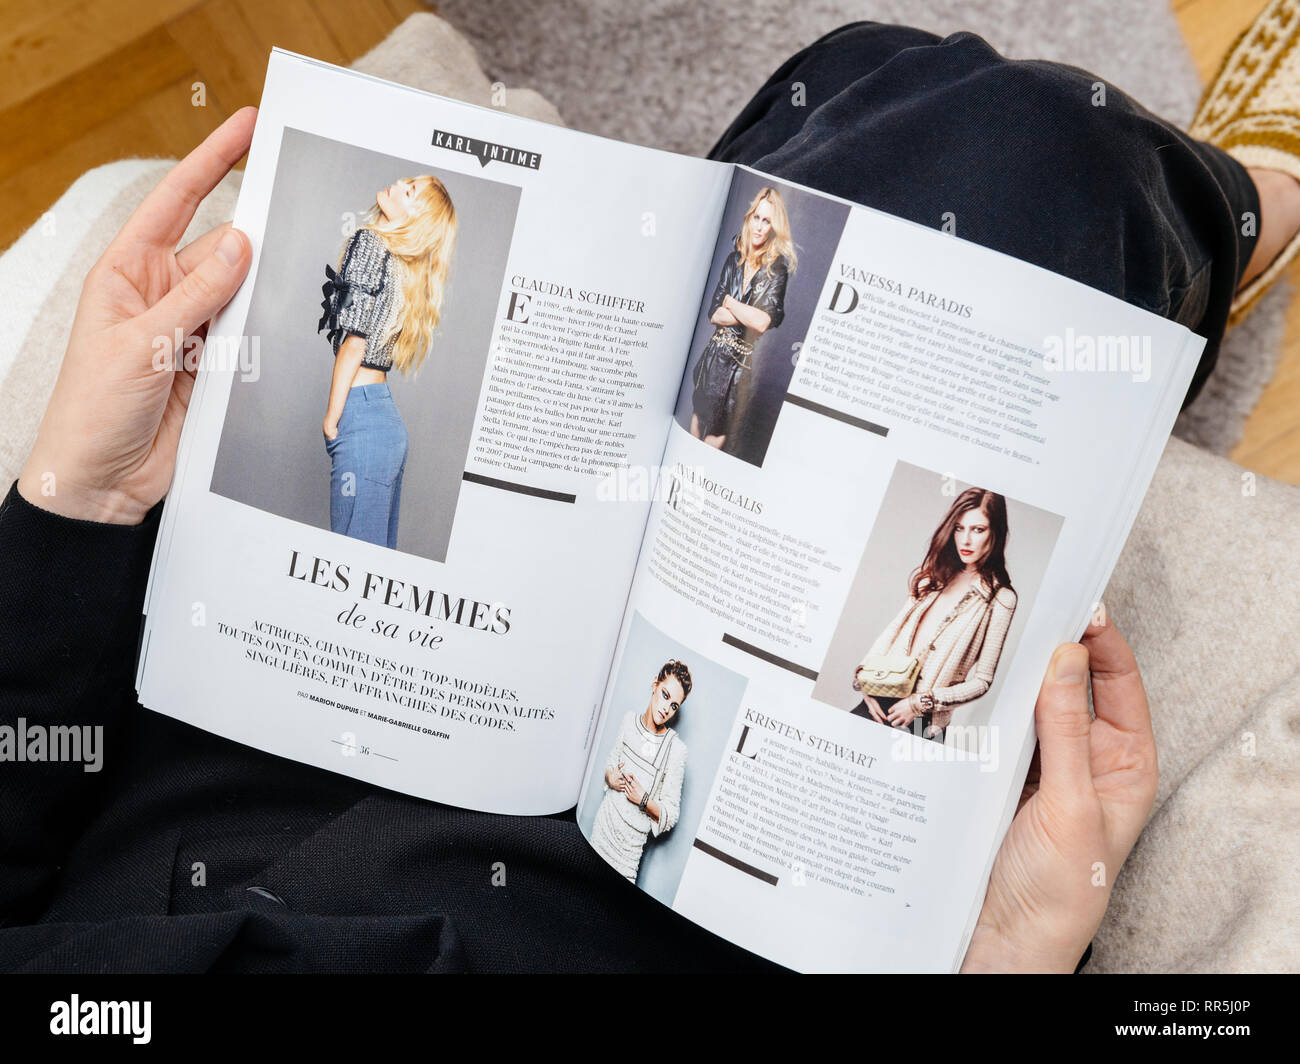 Paris France Feb 23 2019 Woman Reading French Magazine Covering Karl Lagerfeld Death Iconic Fashion Designer Died Aged 85 Article Women S Off His Life Stock Photo Alamy